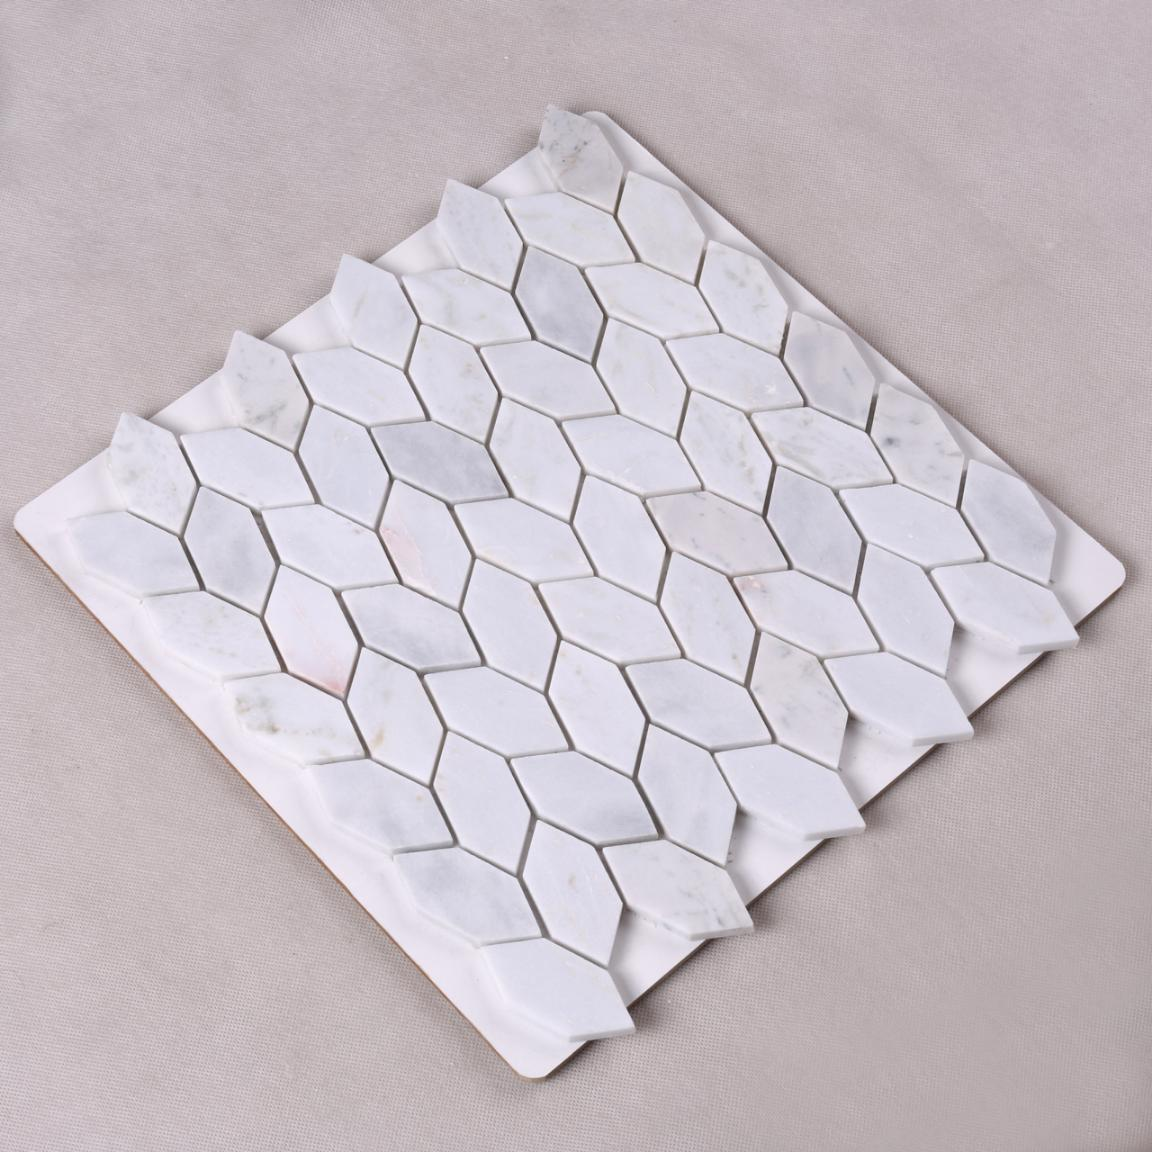 product-HSC97 Best Price Leaf Shape Natural Stone Decorative Mosaic-Heng Xing-img